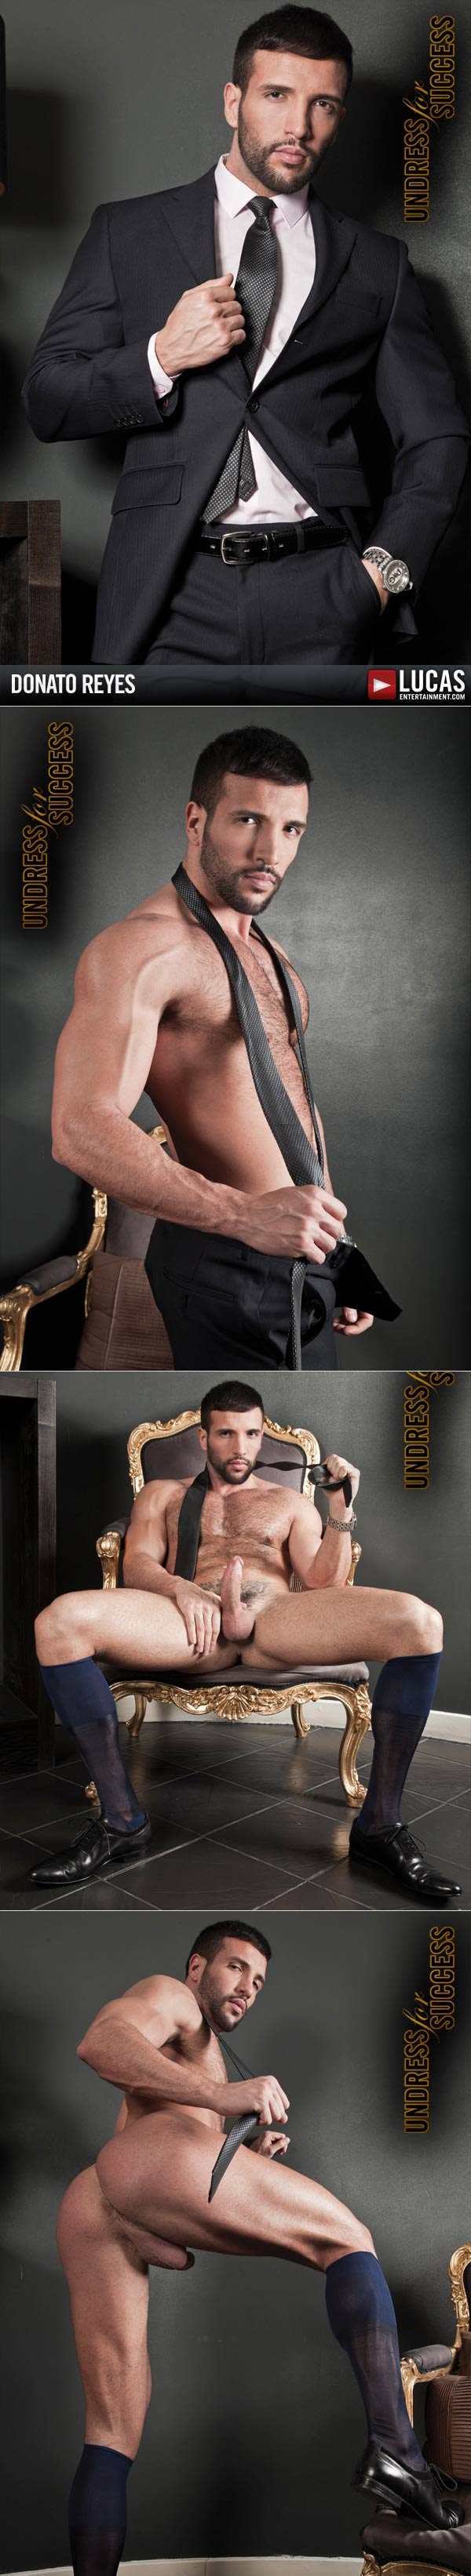 Undress For Success (Tomas Brand & Donato Reyes) at LucasEntertainment.com